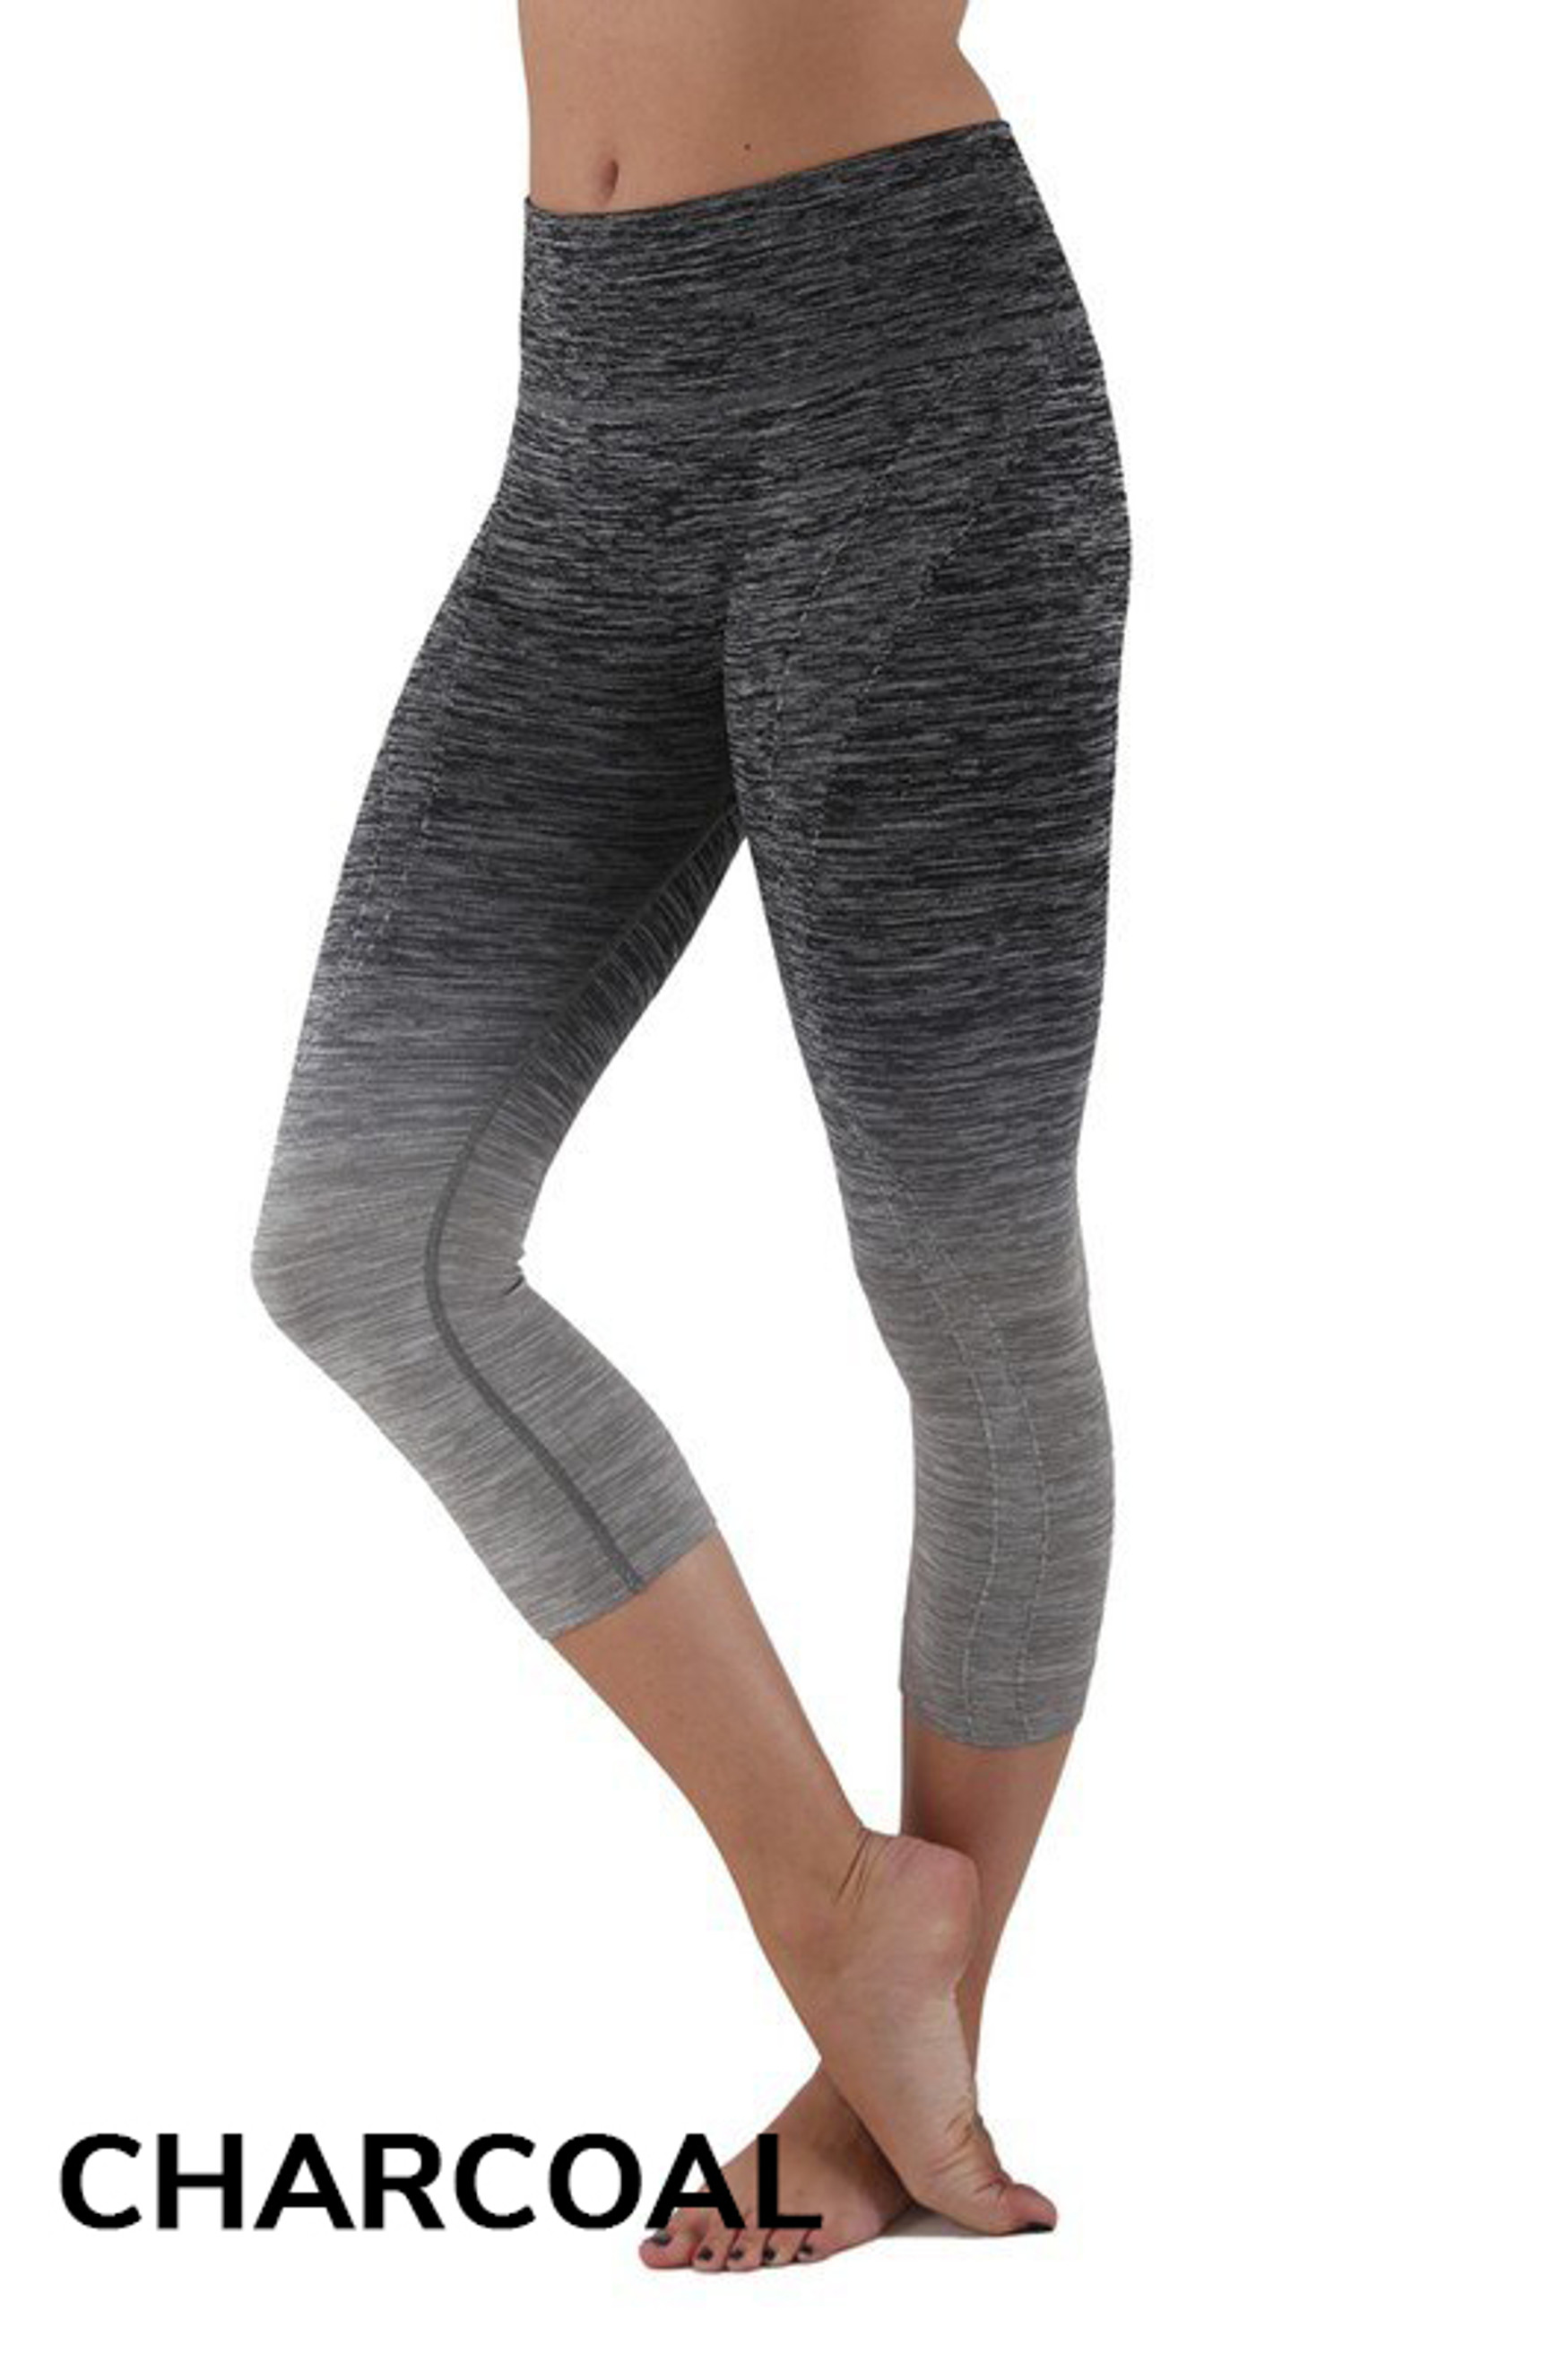 Charcoal Ombre Fusion Workout Plus Size Capris